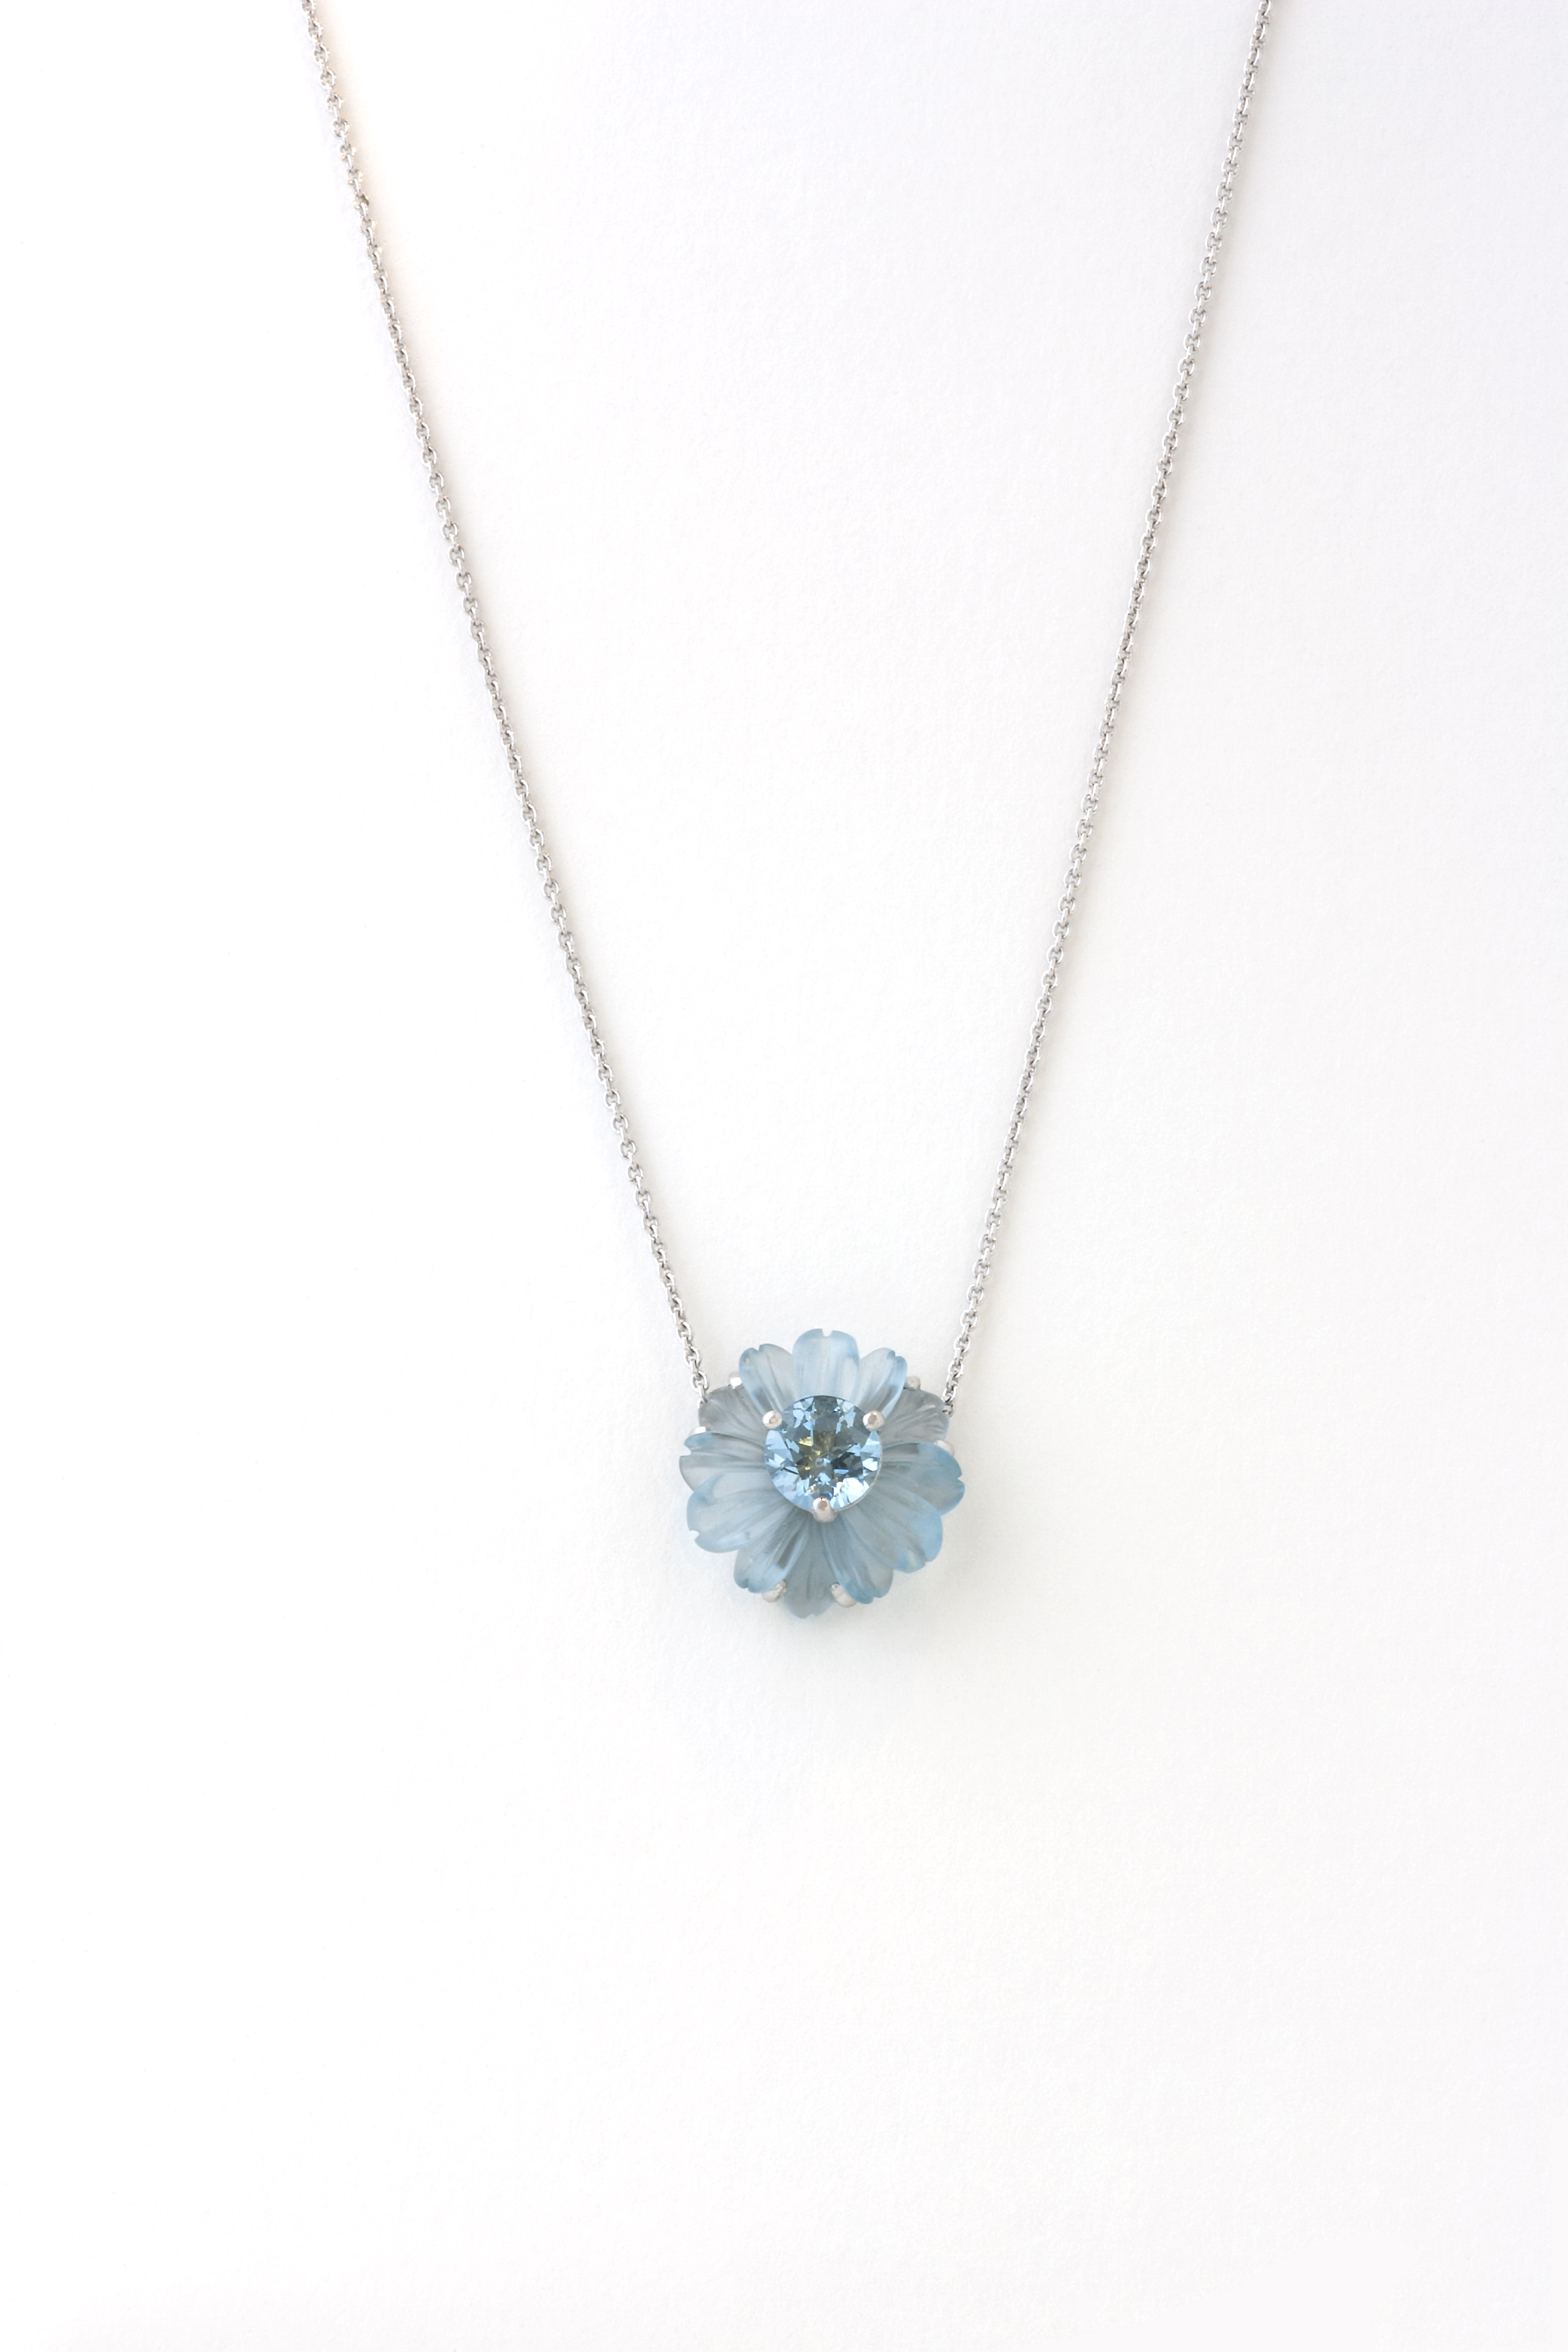 Aquamarine and Blue topaz pendent